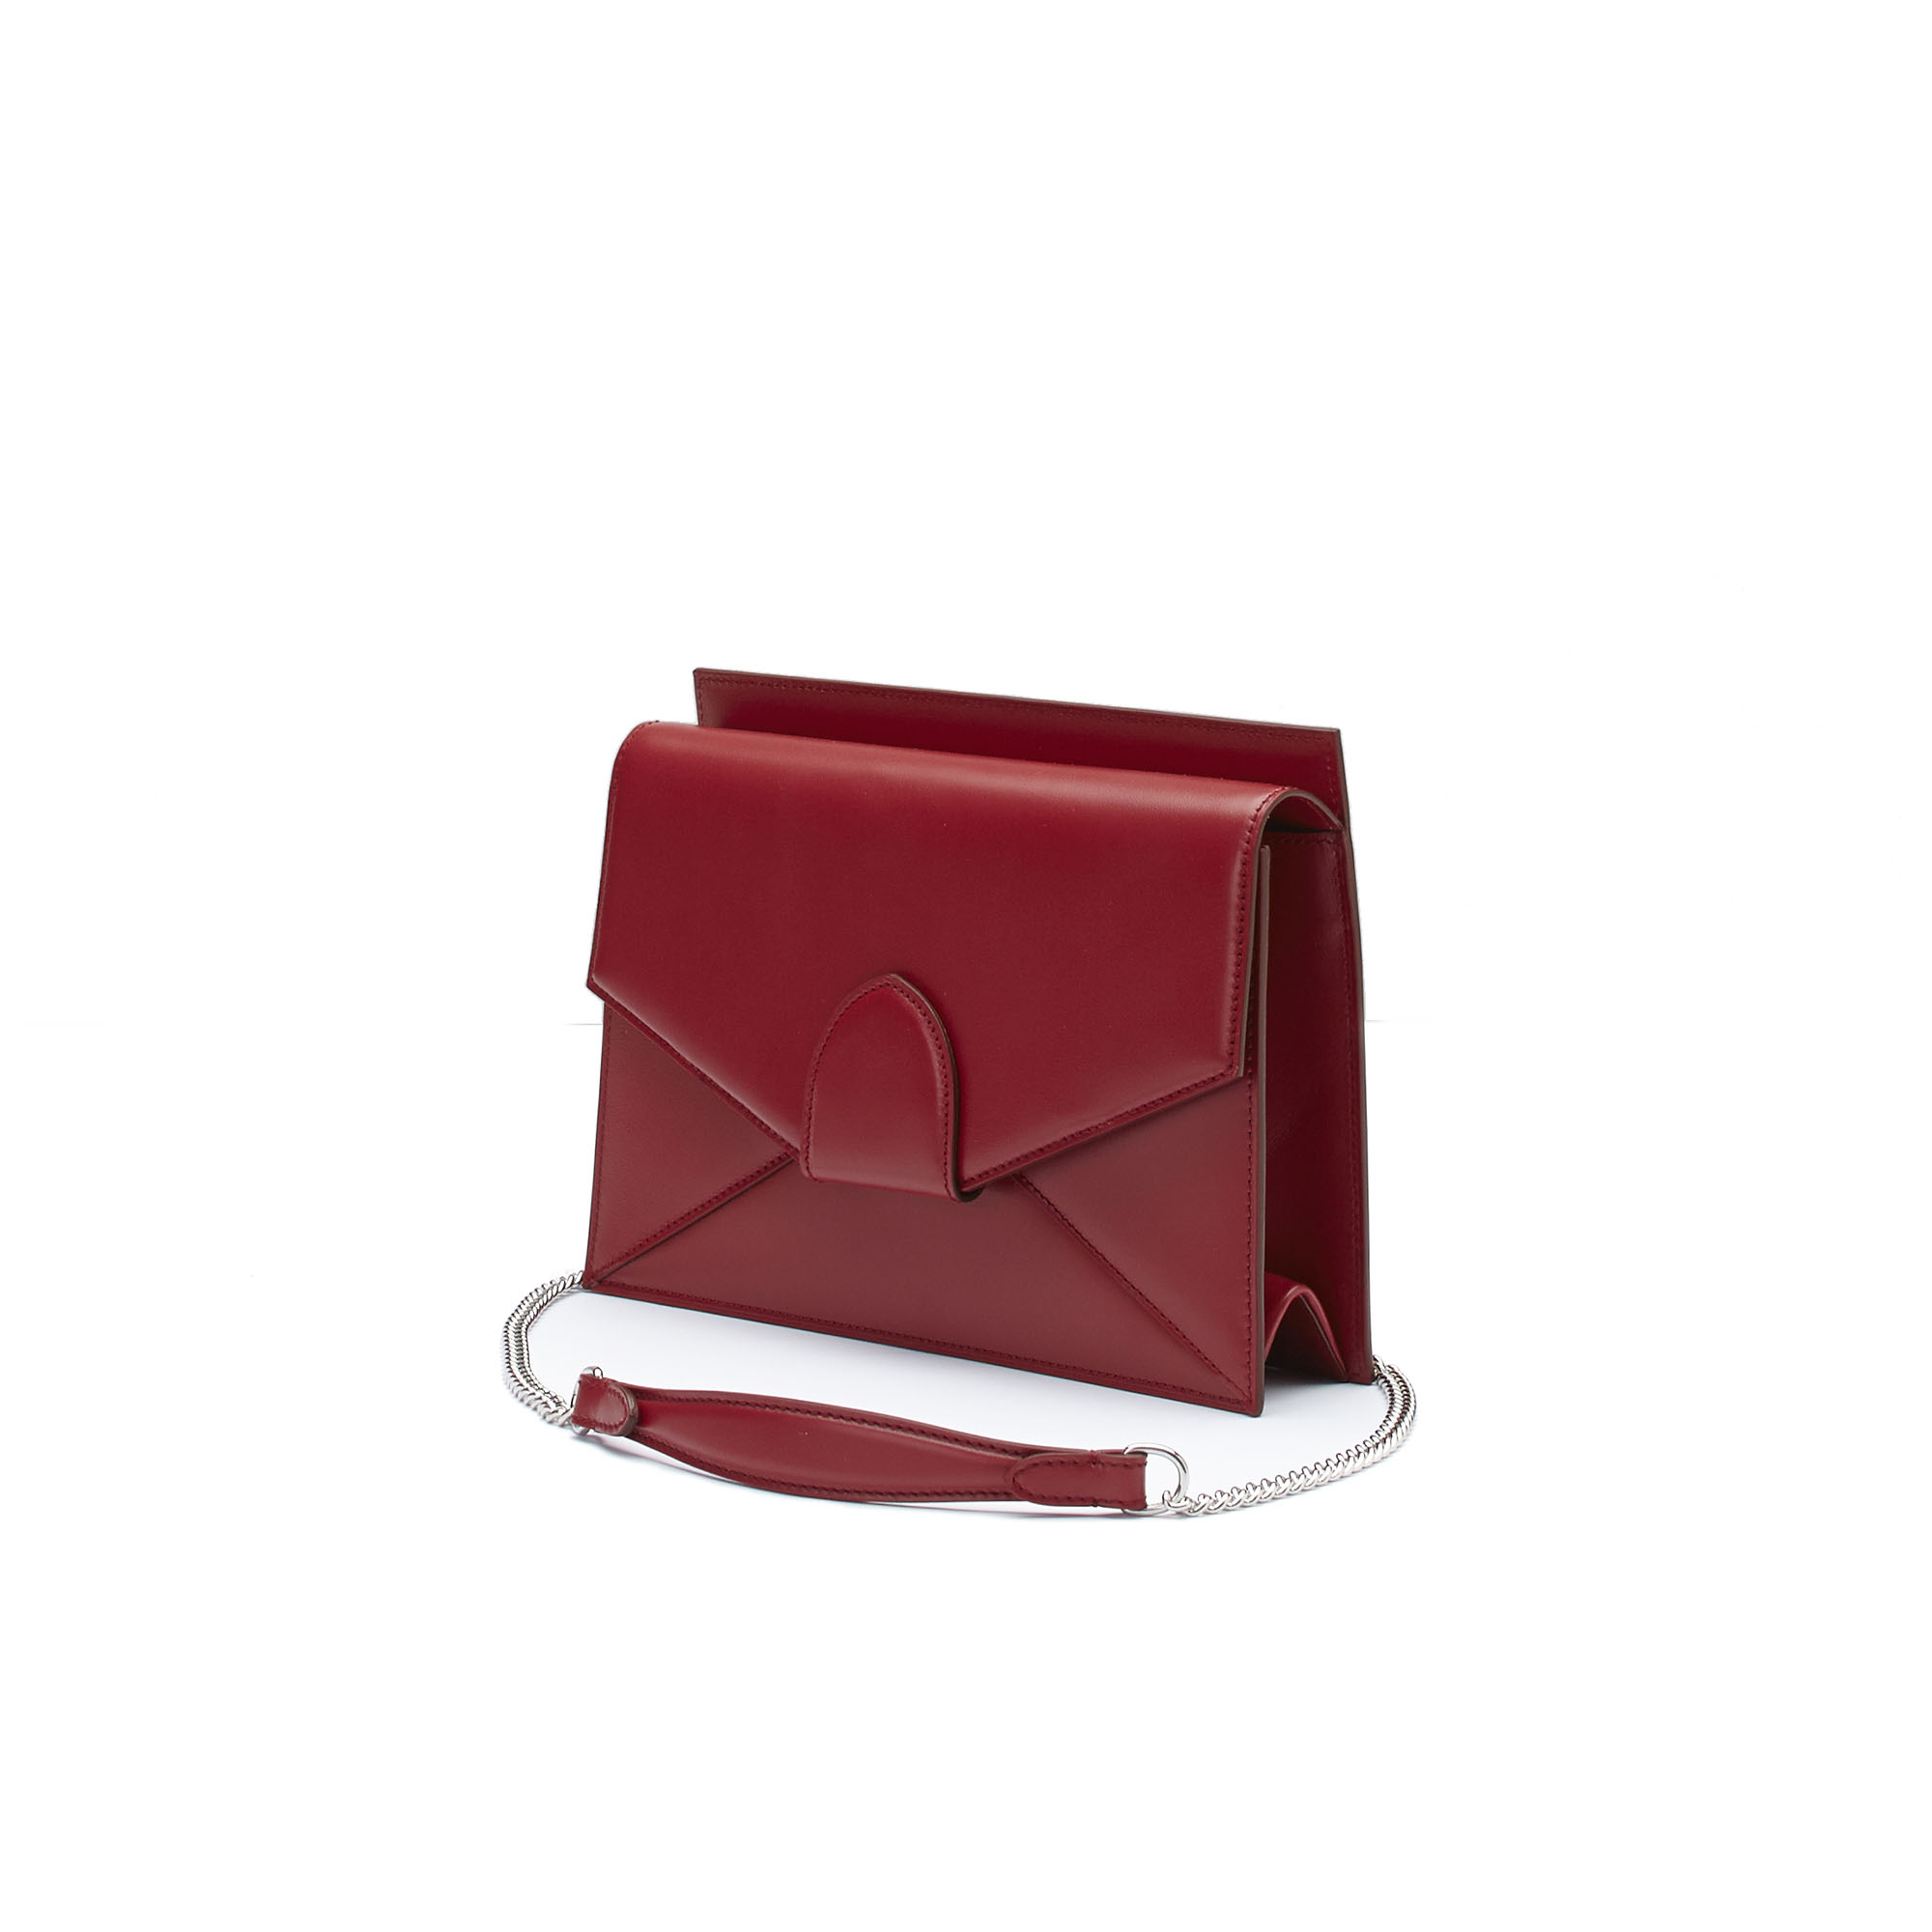 The red french calf Dafne Chain bag by Bertoni 1949 02